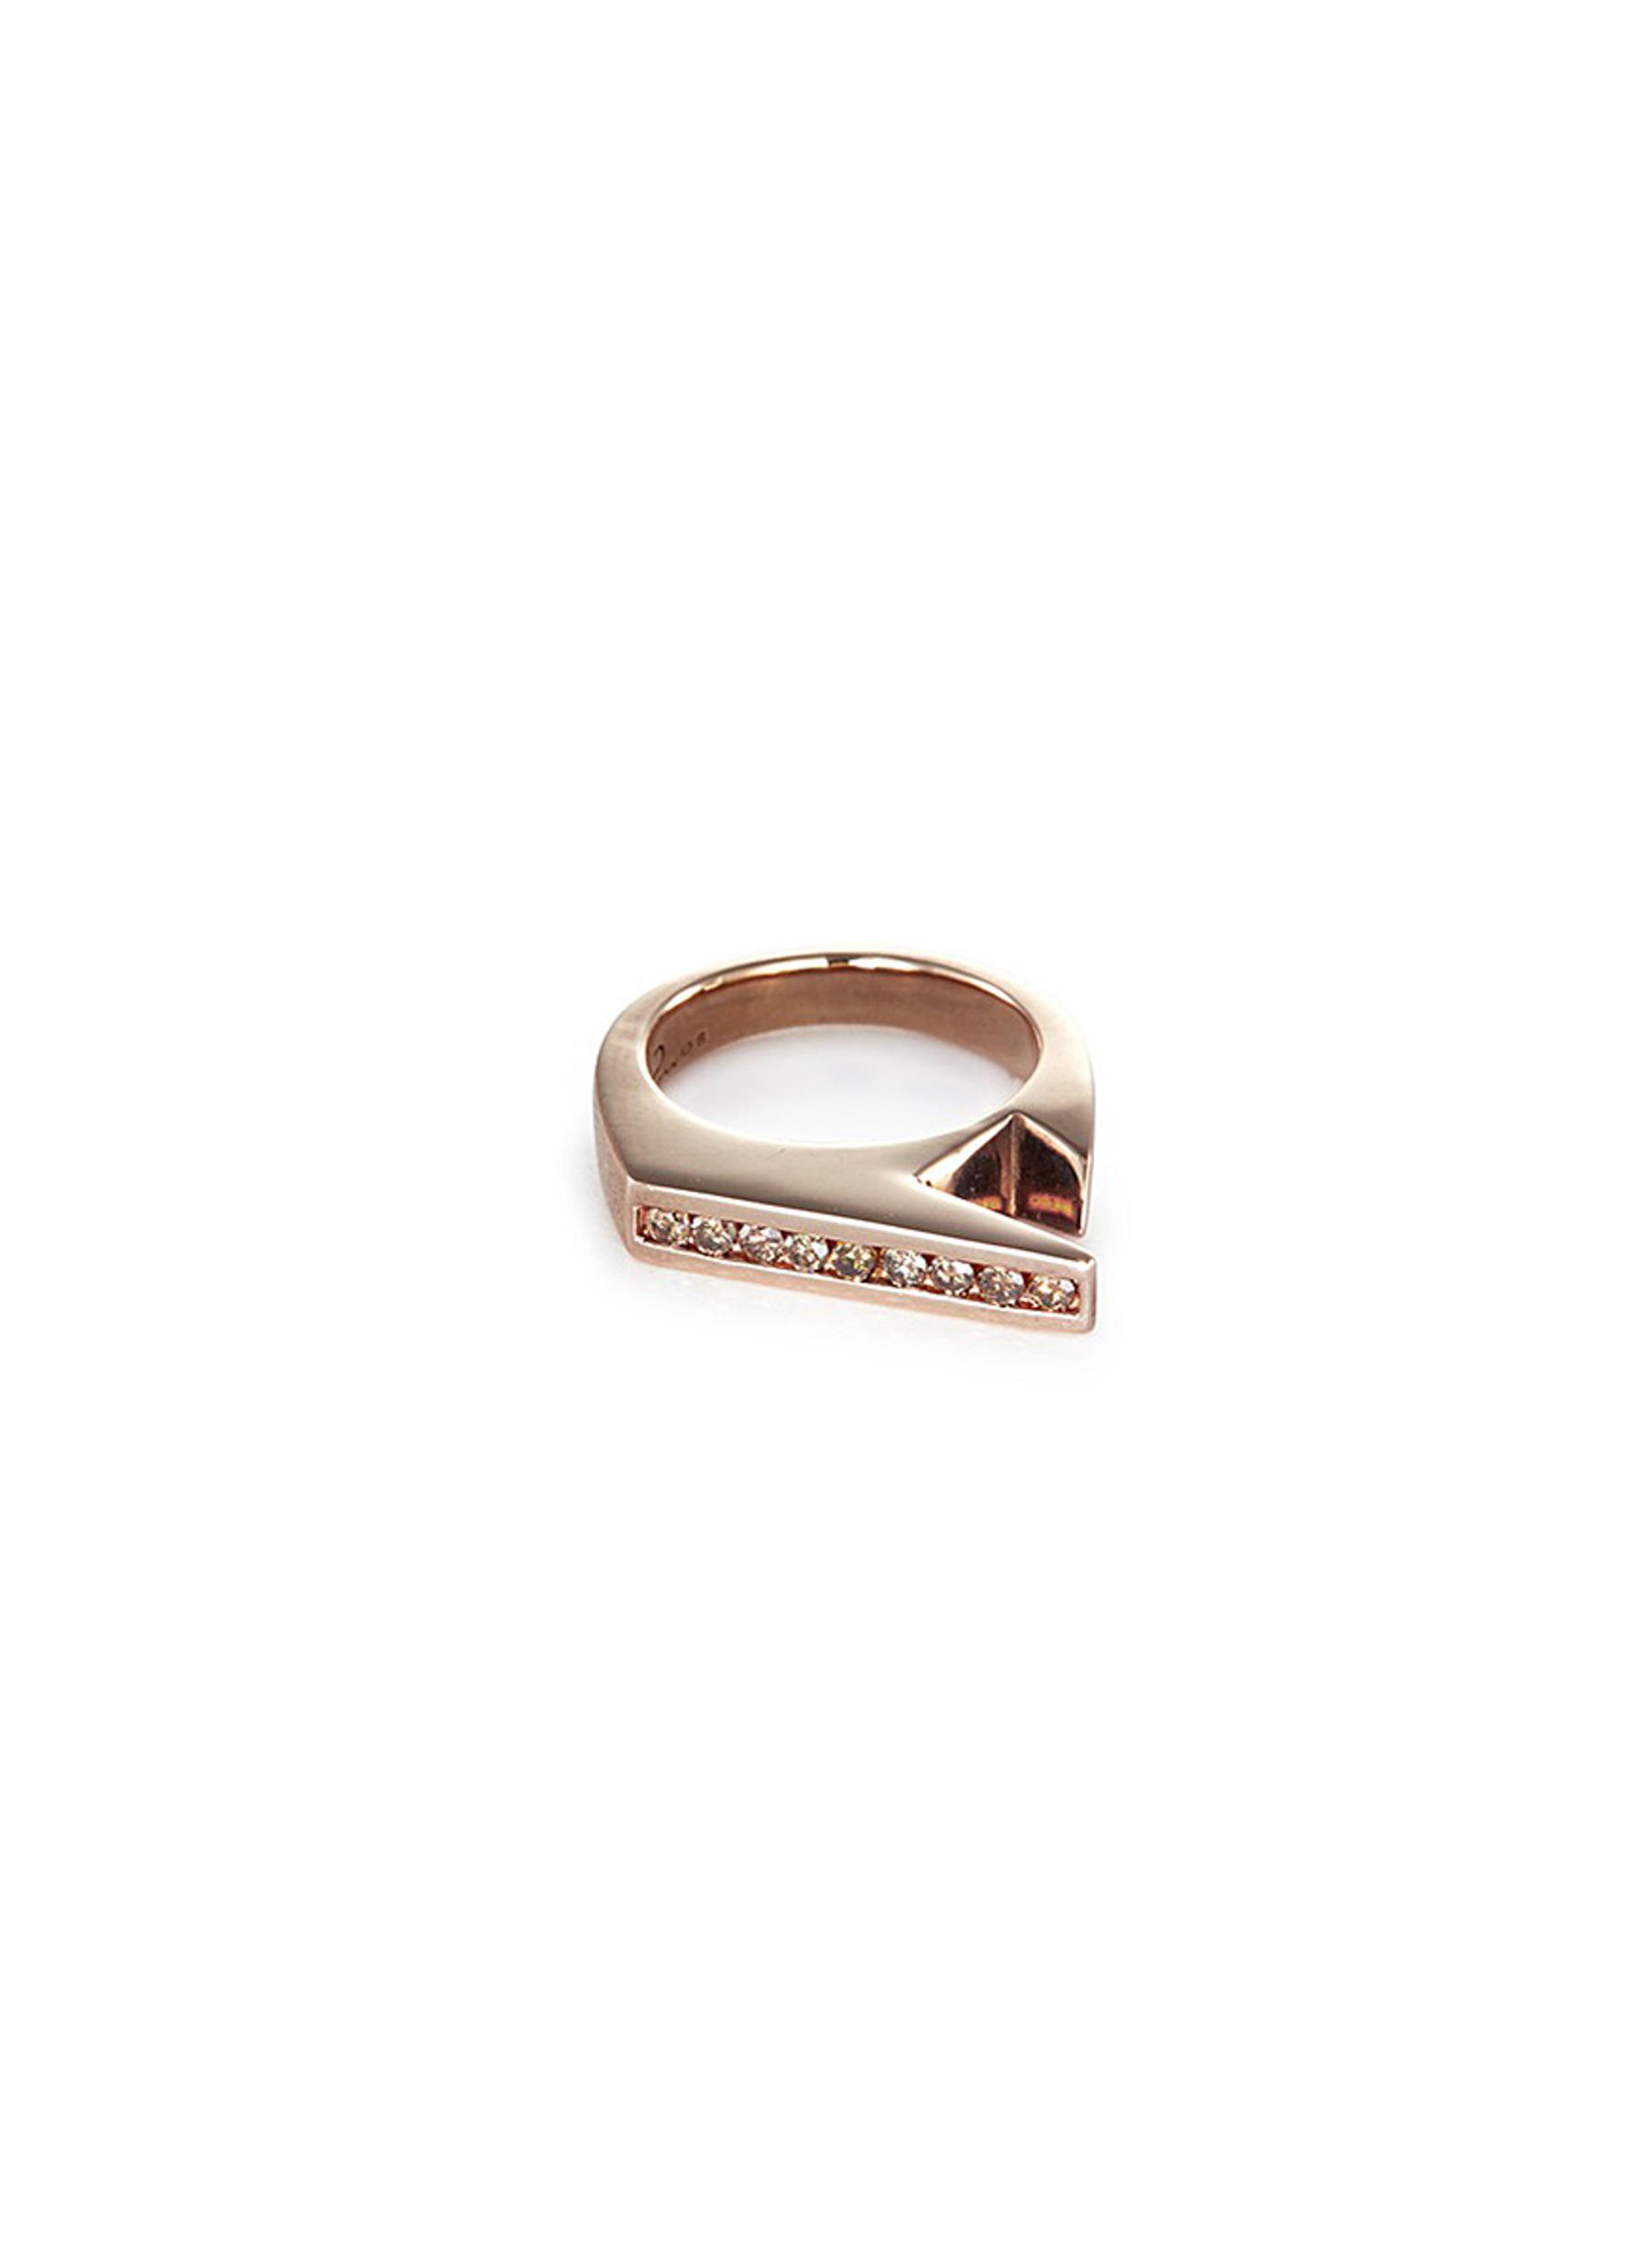 LYNN BAN 'Stackable Jagged Knuckle B' rose gold silver ring